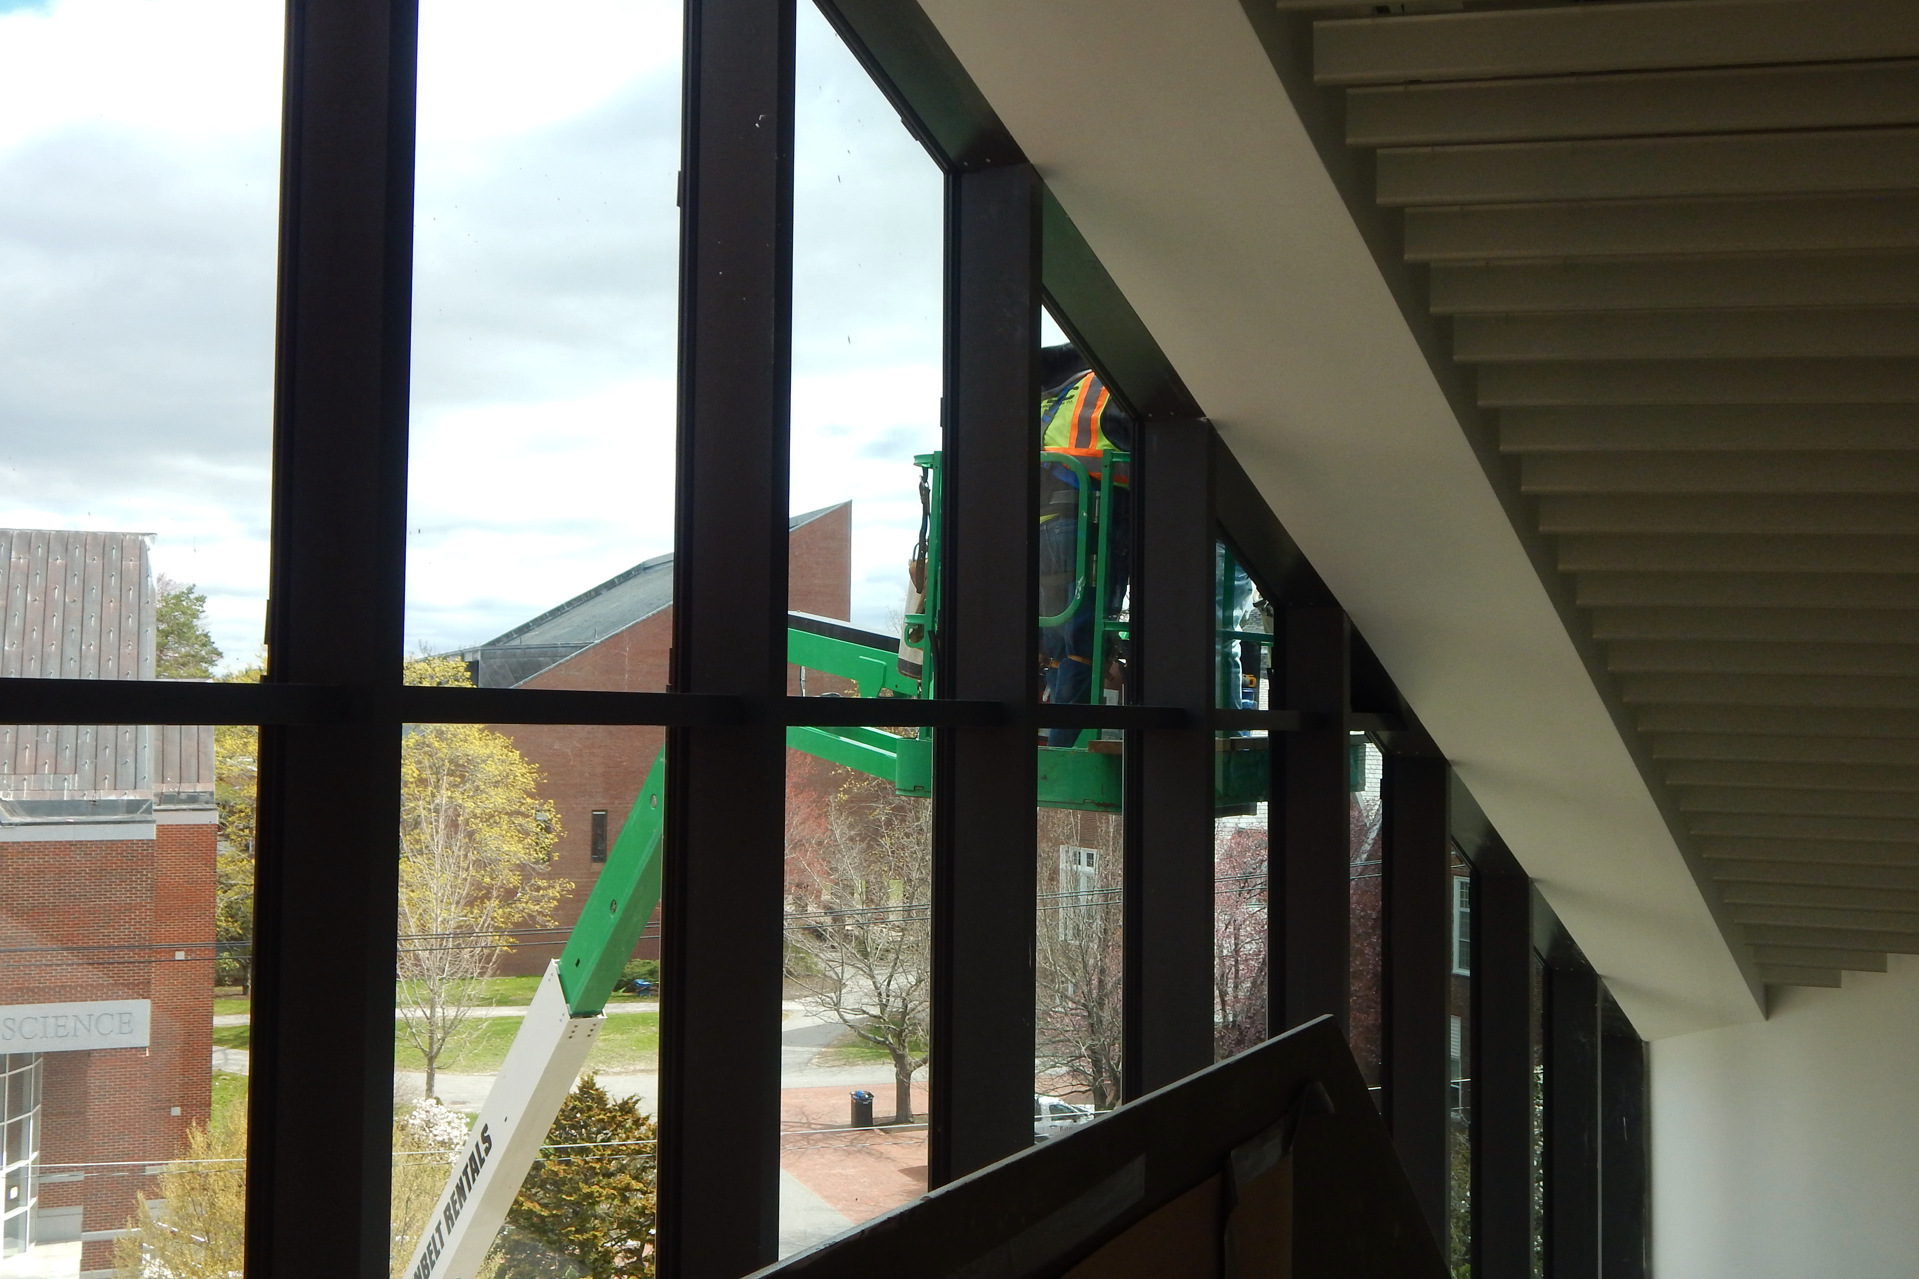 Carnegie Science Hall and Ladd Library (and roofers on a lift) seen from the head of the Bonney Center's Monumental Stair. (Doug Hubley/Bates College)